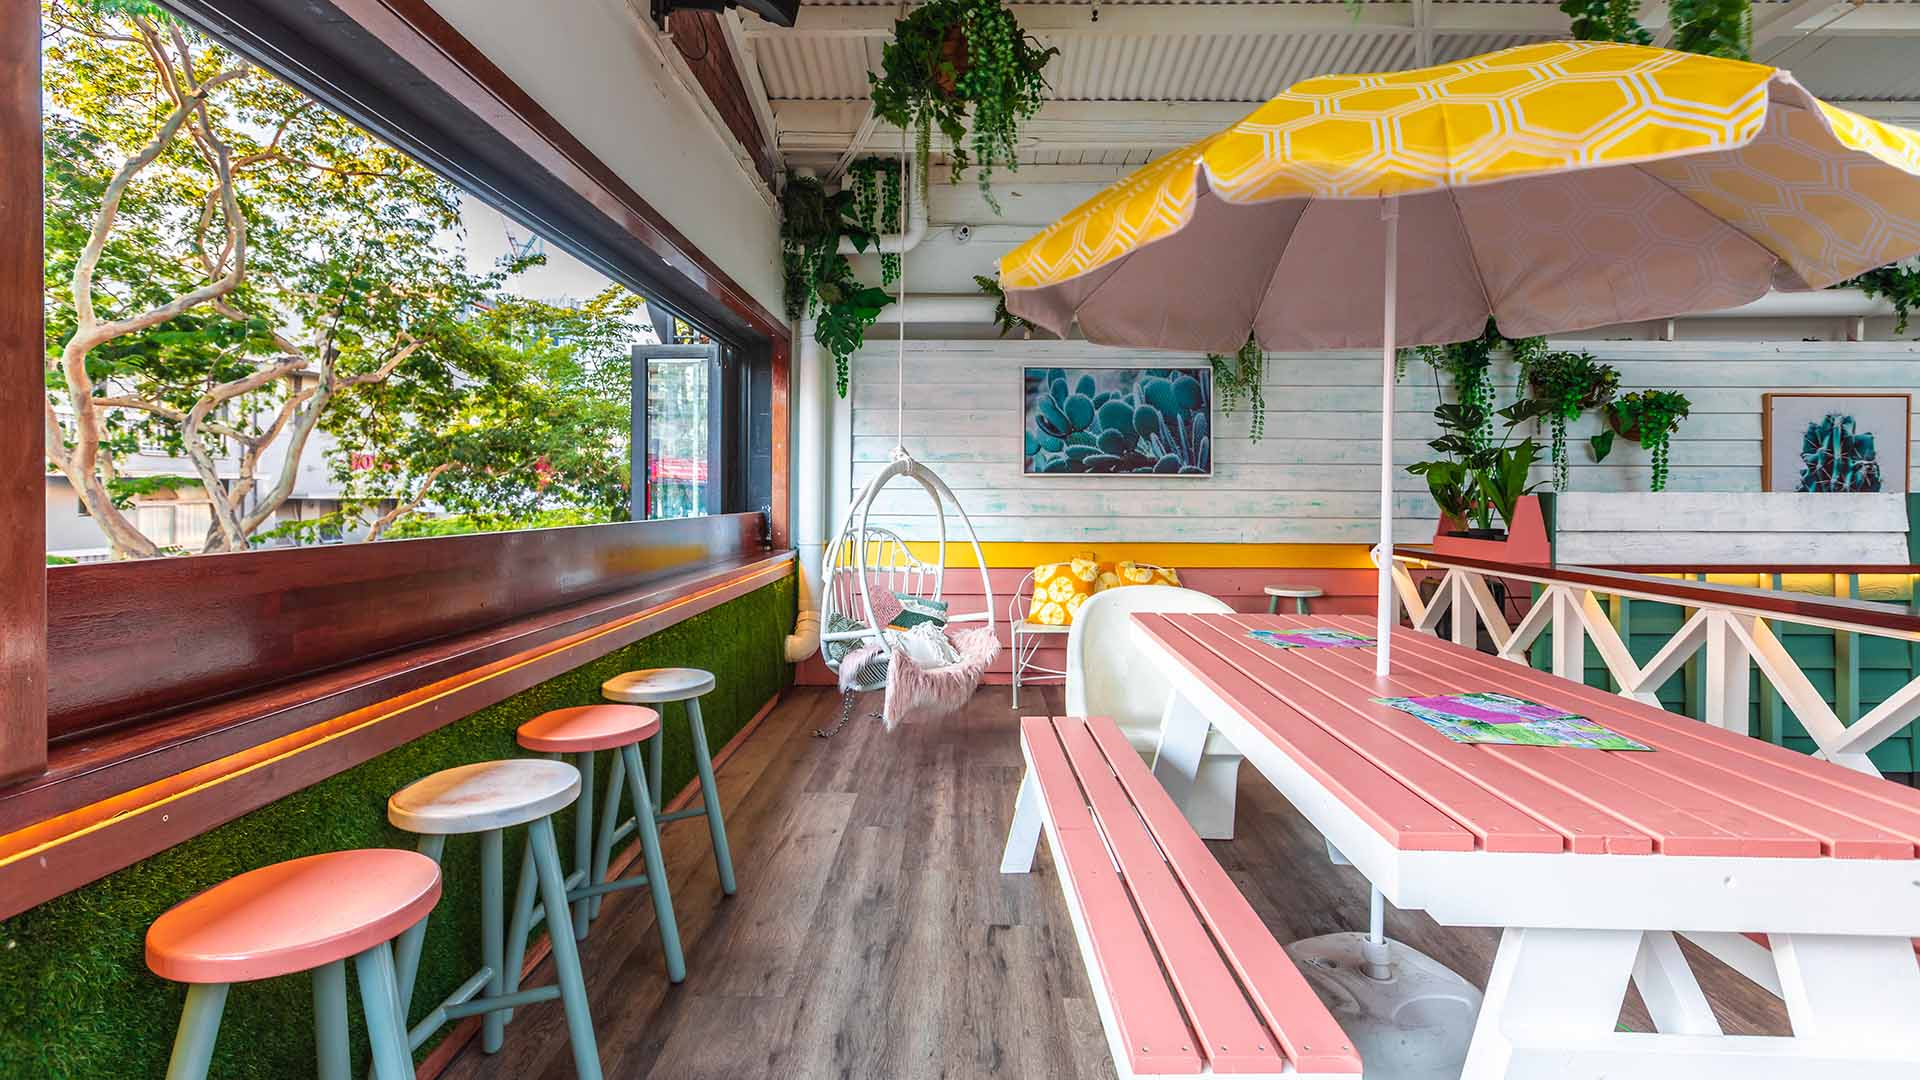 Ivory Tusk Is Fortitude Valley's New Palm Springs-Inspired Bar with a Garden Terrace